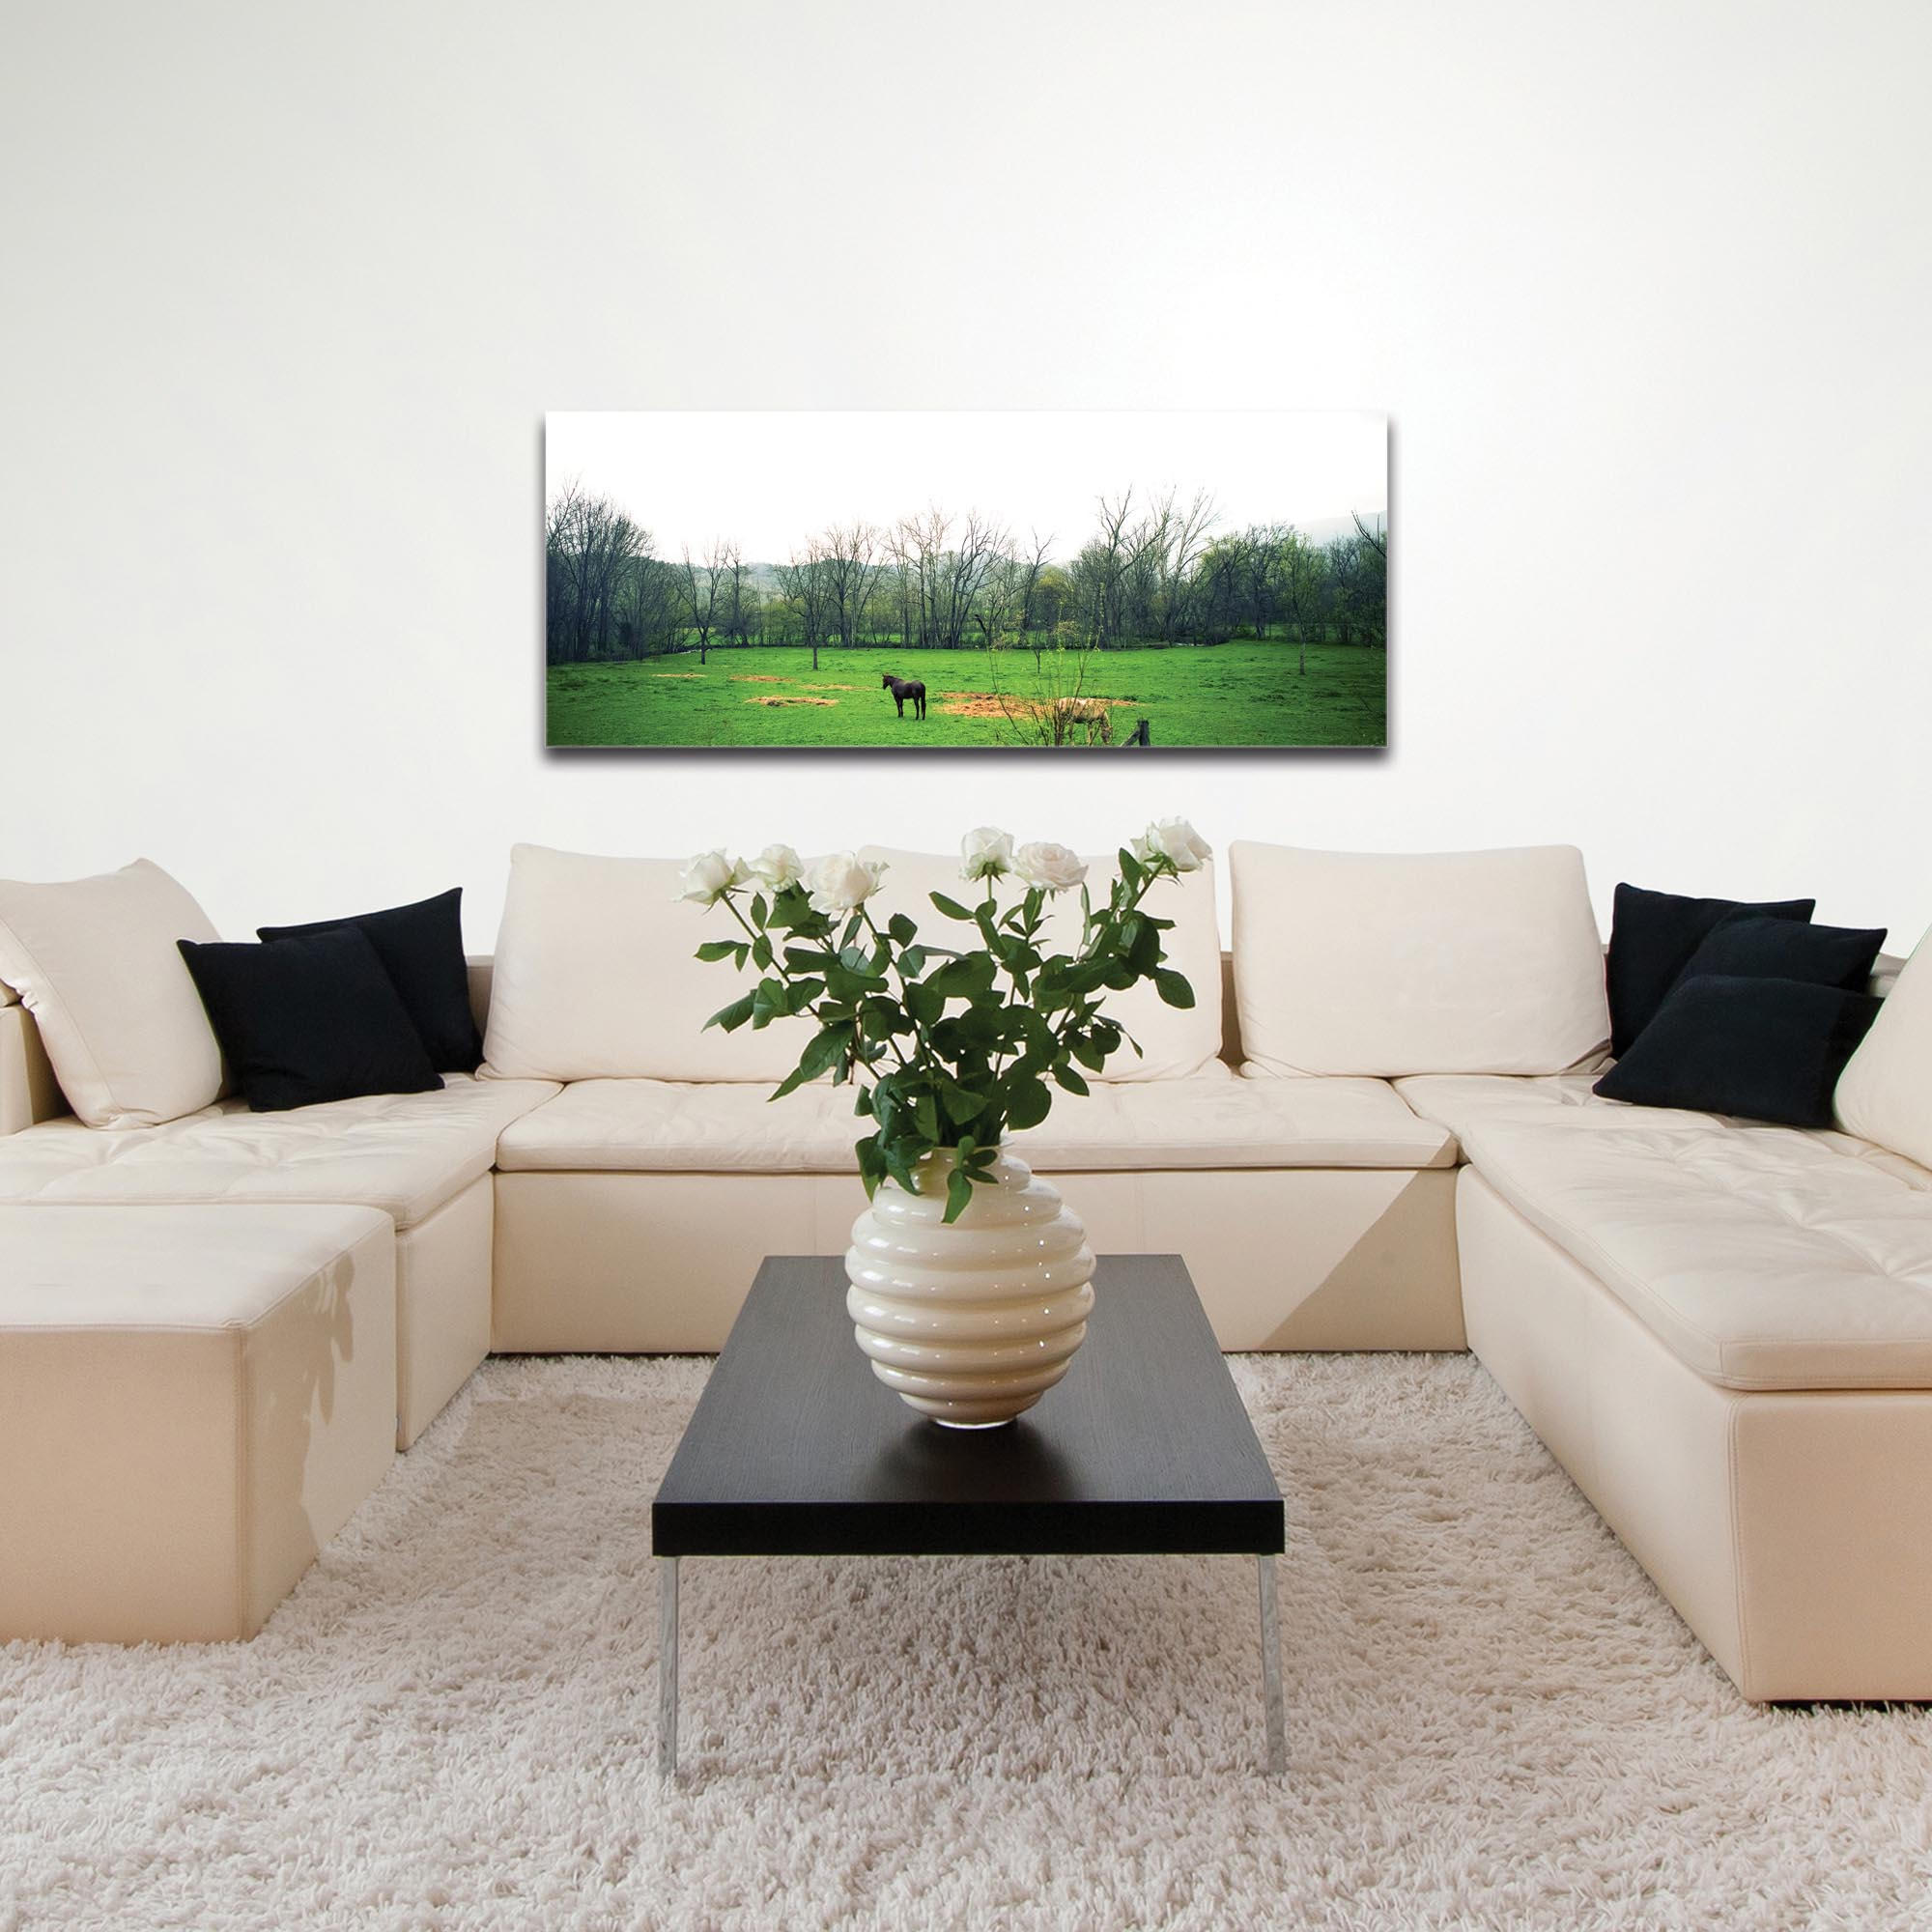 Western Wall Art 'Out to Pasture' - Horses Decor on Metal or Plexiglass - Image 3